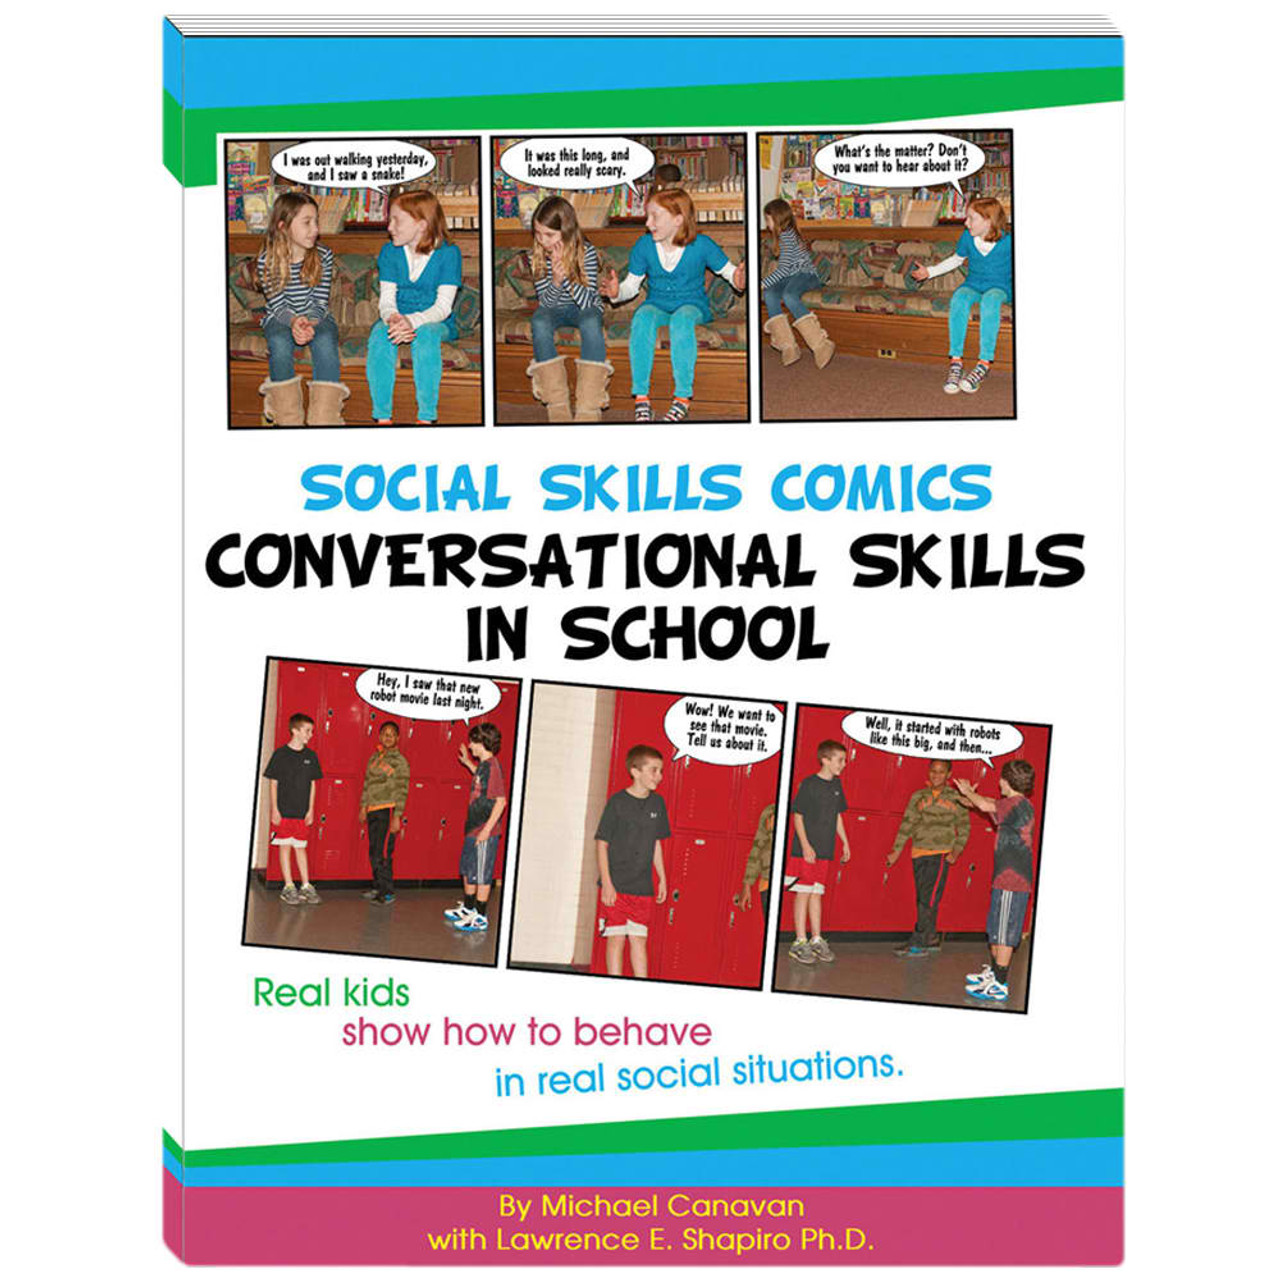 Social Skills Comics (Conversation Skills in School)